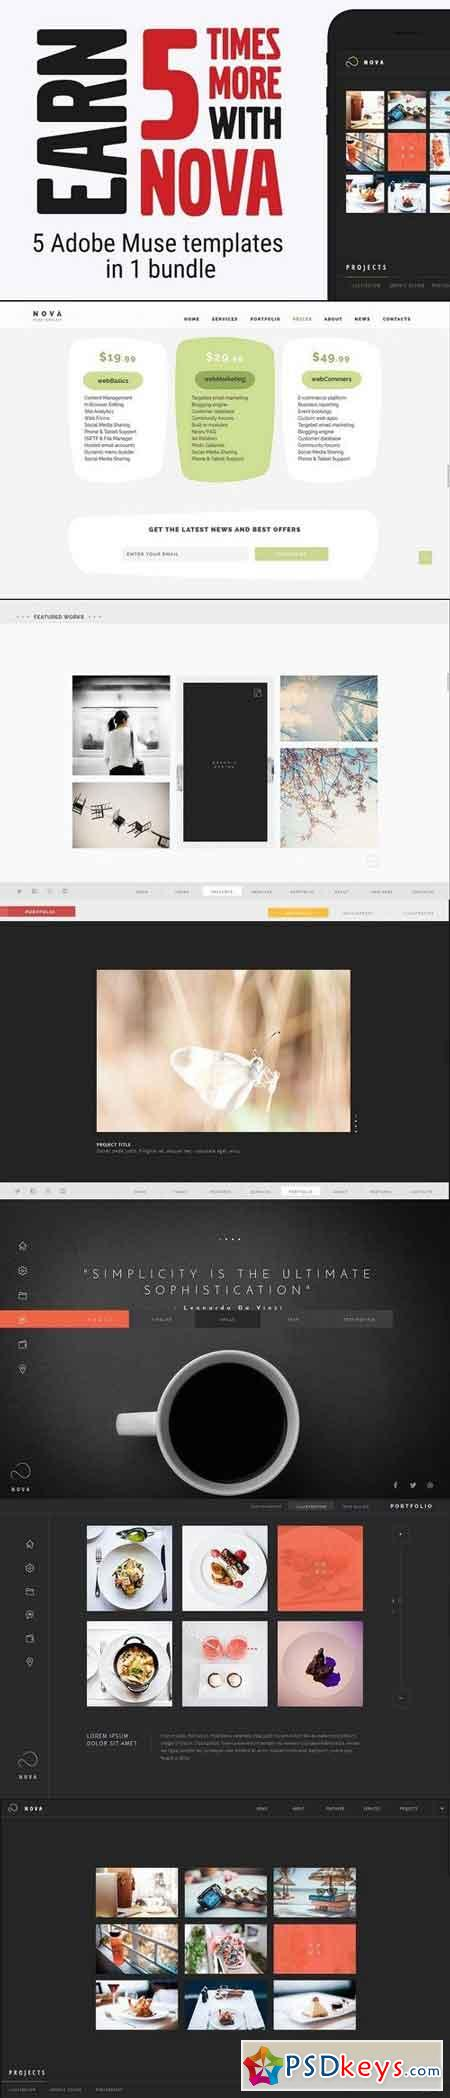 Nova Adobe Muse Template ( 5 in 1 ) 974873 » Free Download Photoshop